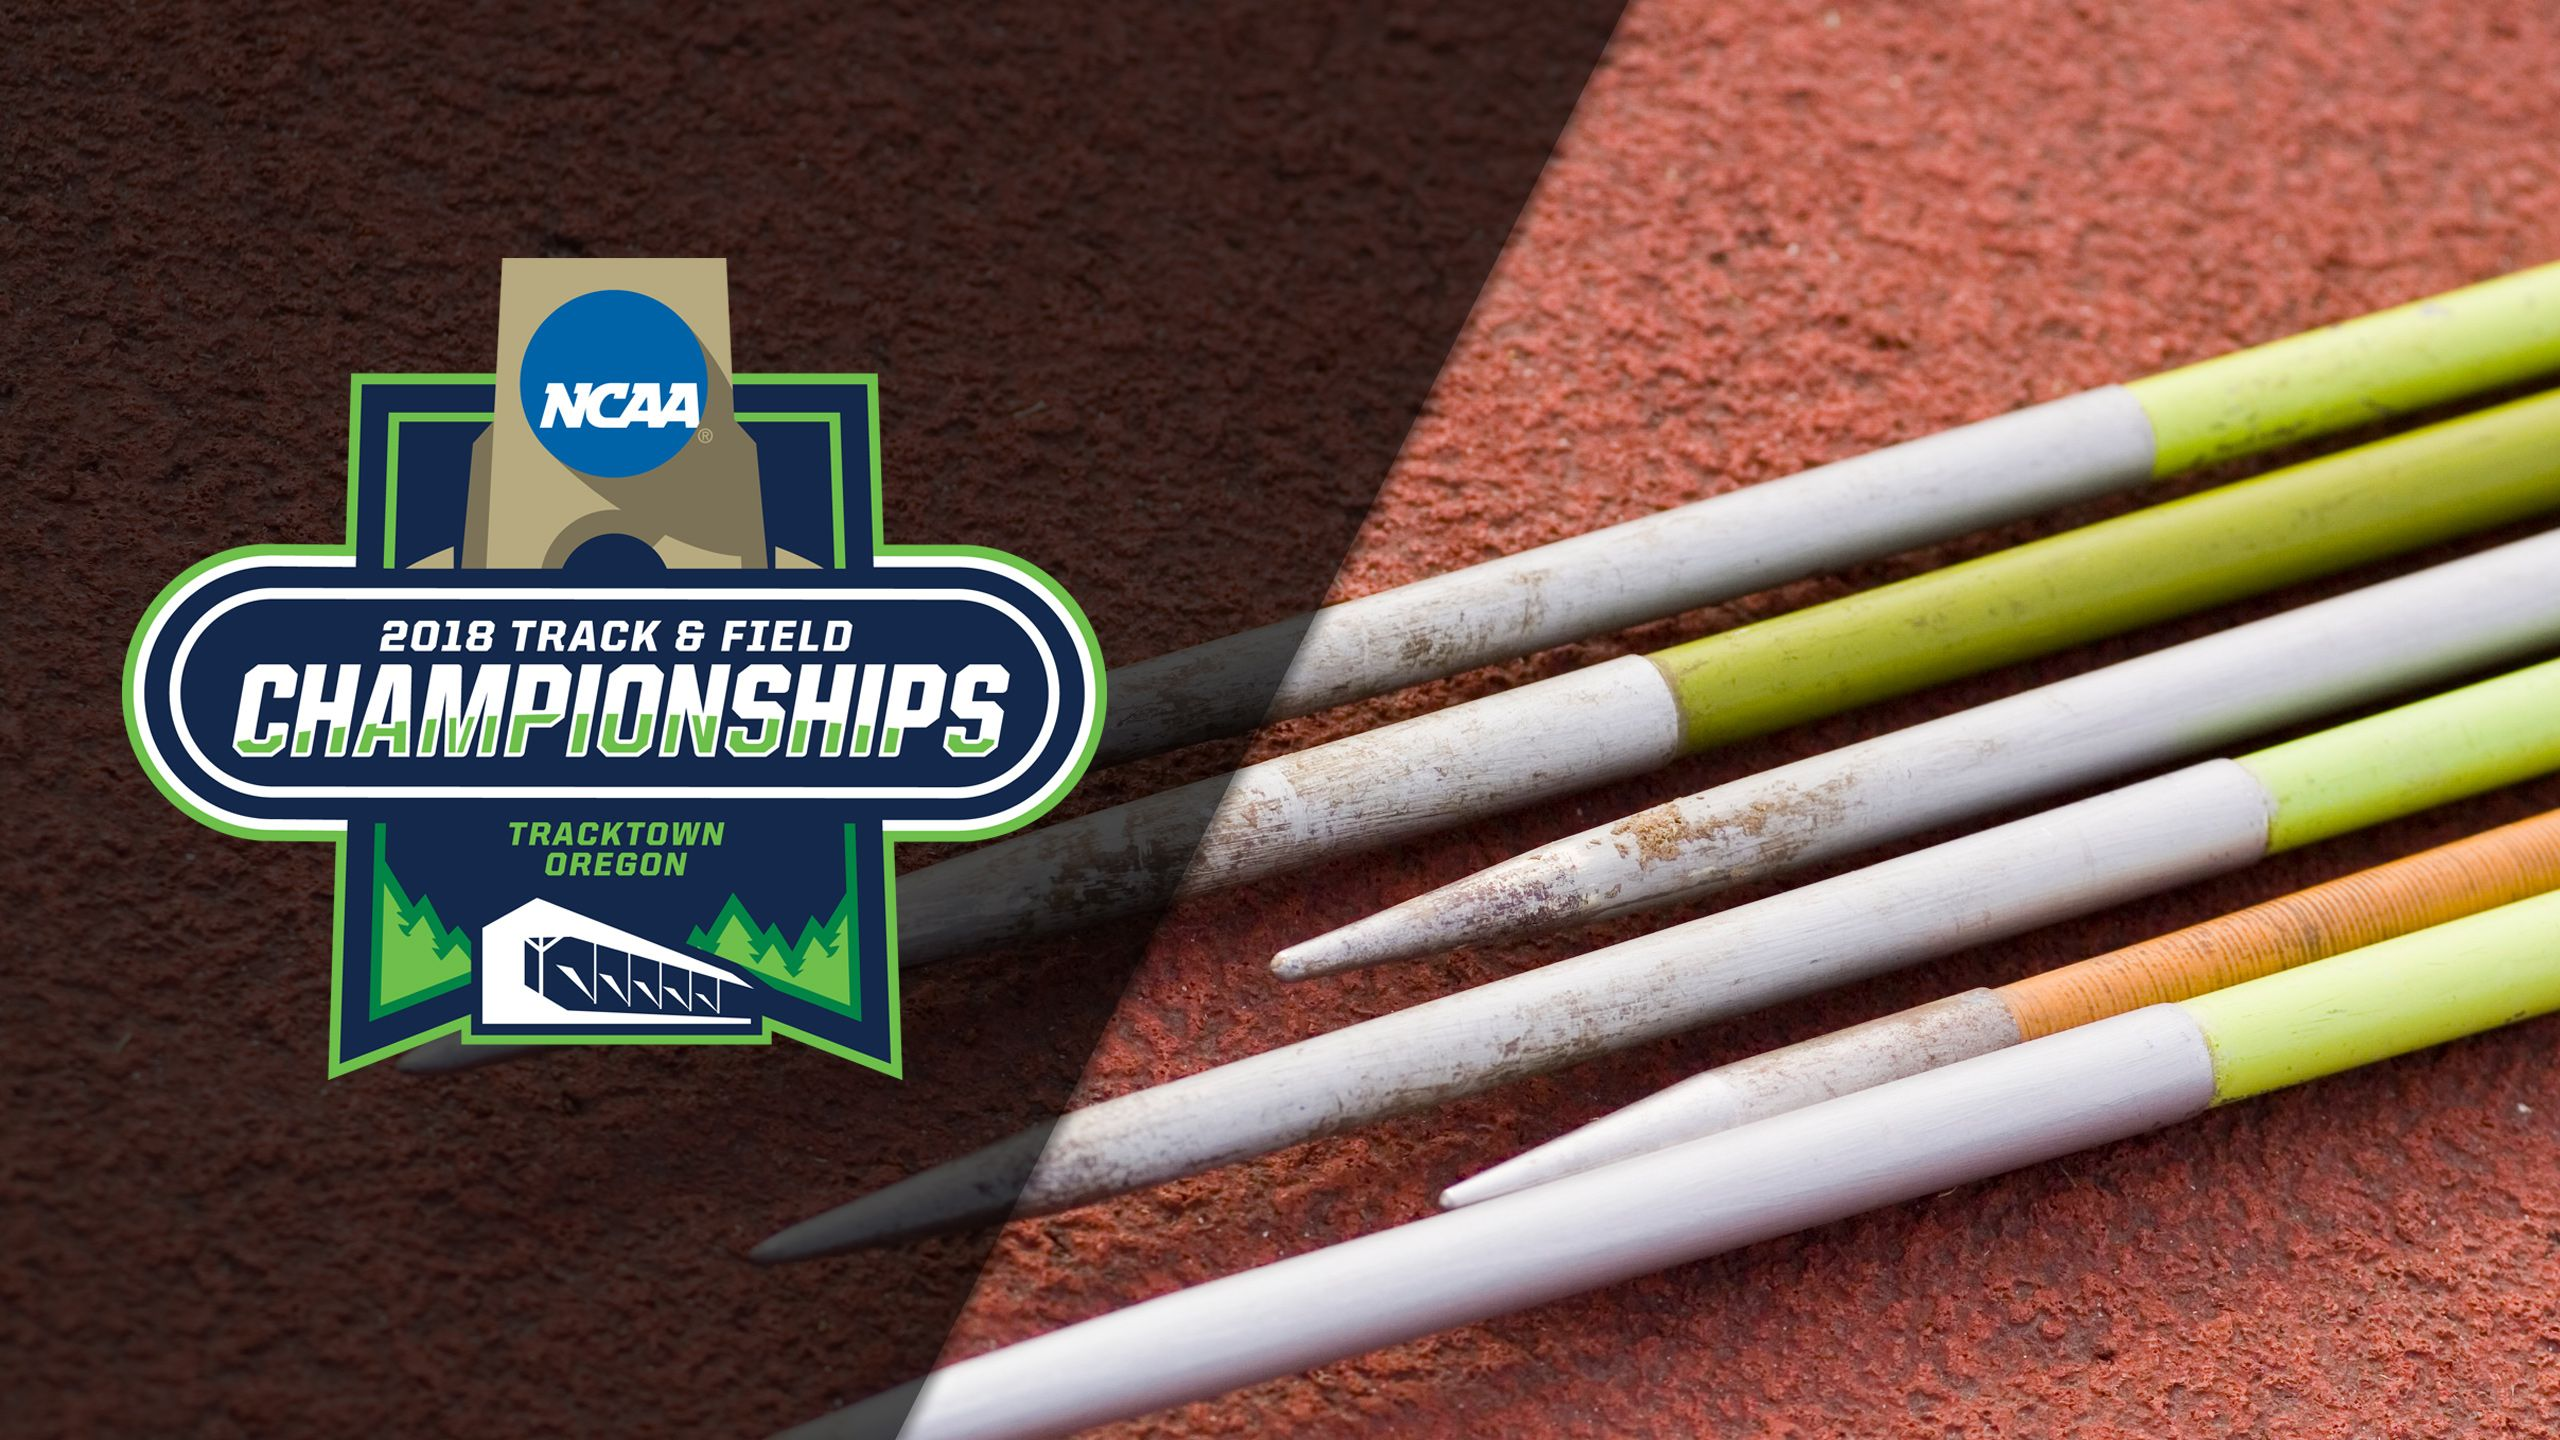 NCAA Track & Field Outdoor Championships - Women's Javelin Throw (Feed #1)